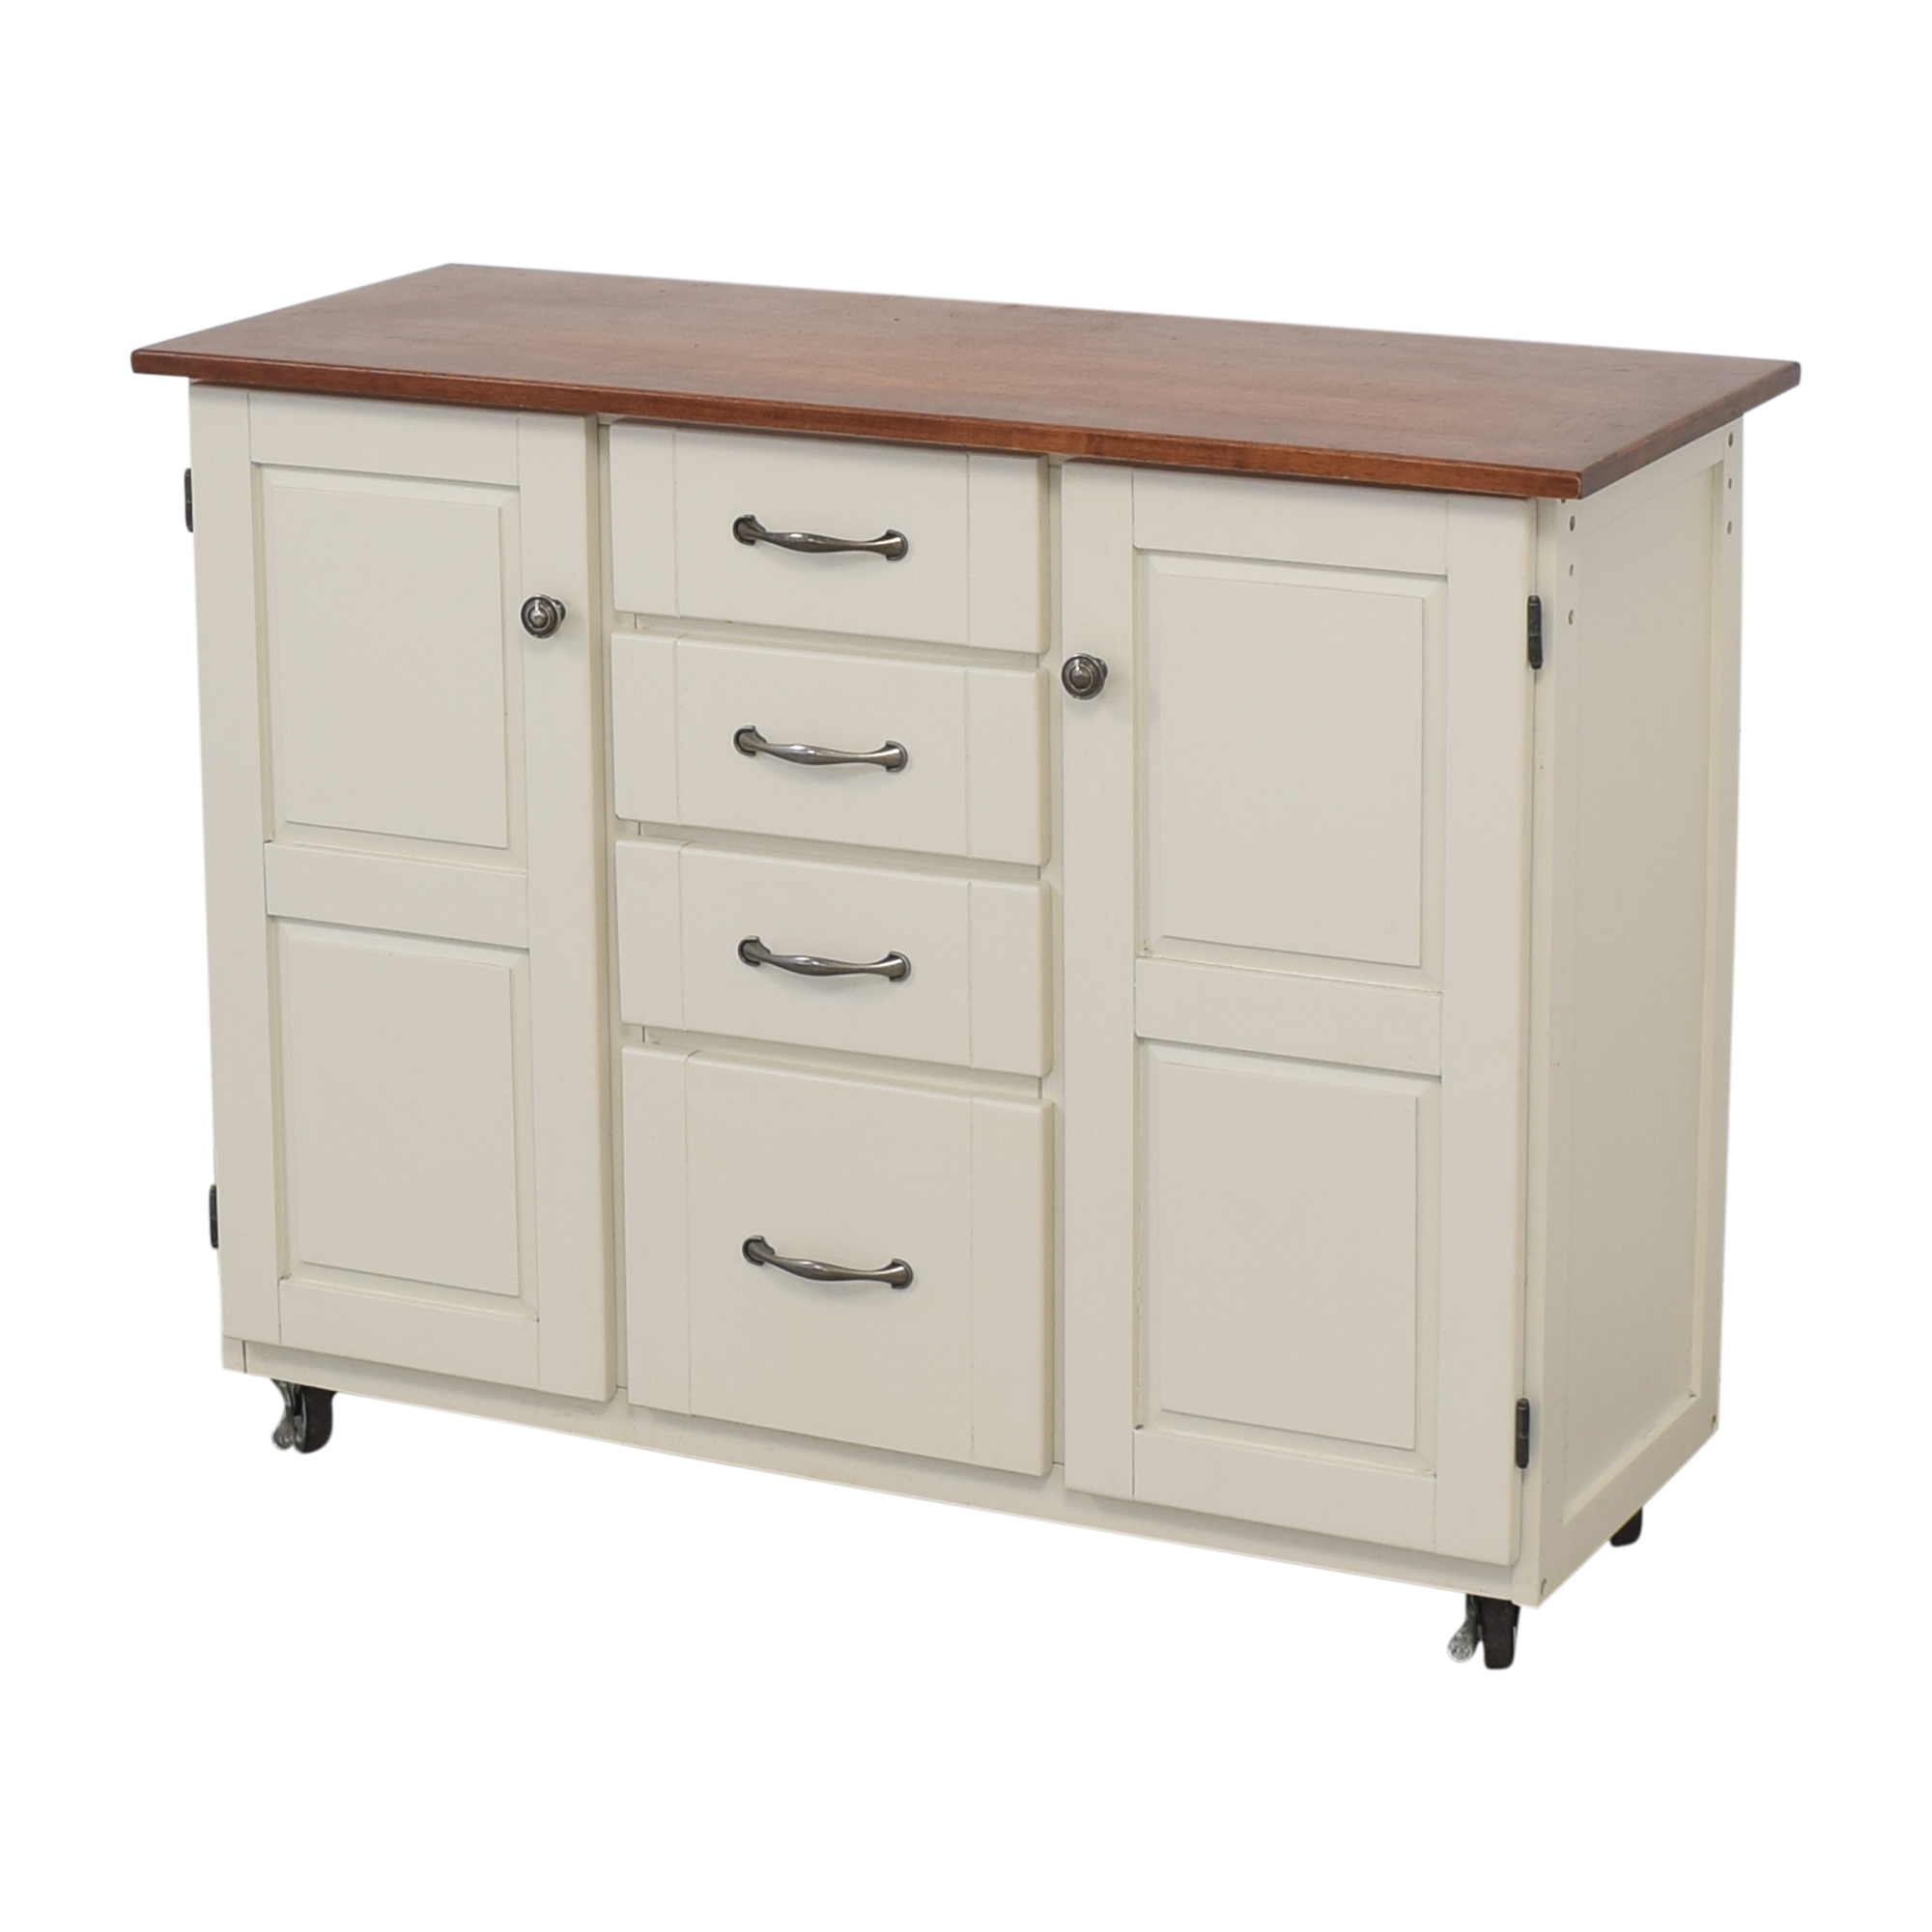 Home Styles Home Styles Kitchen Cart coupon